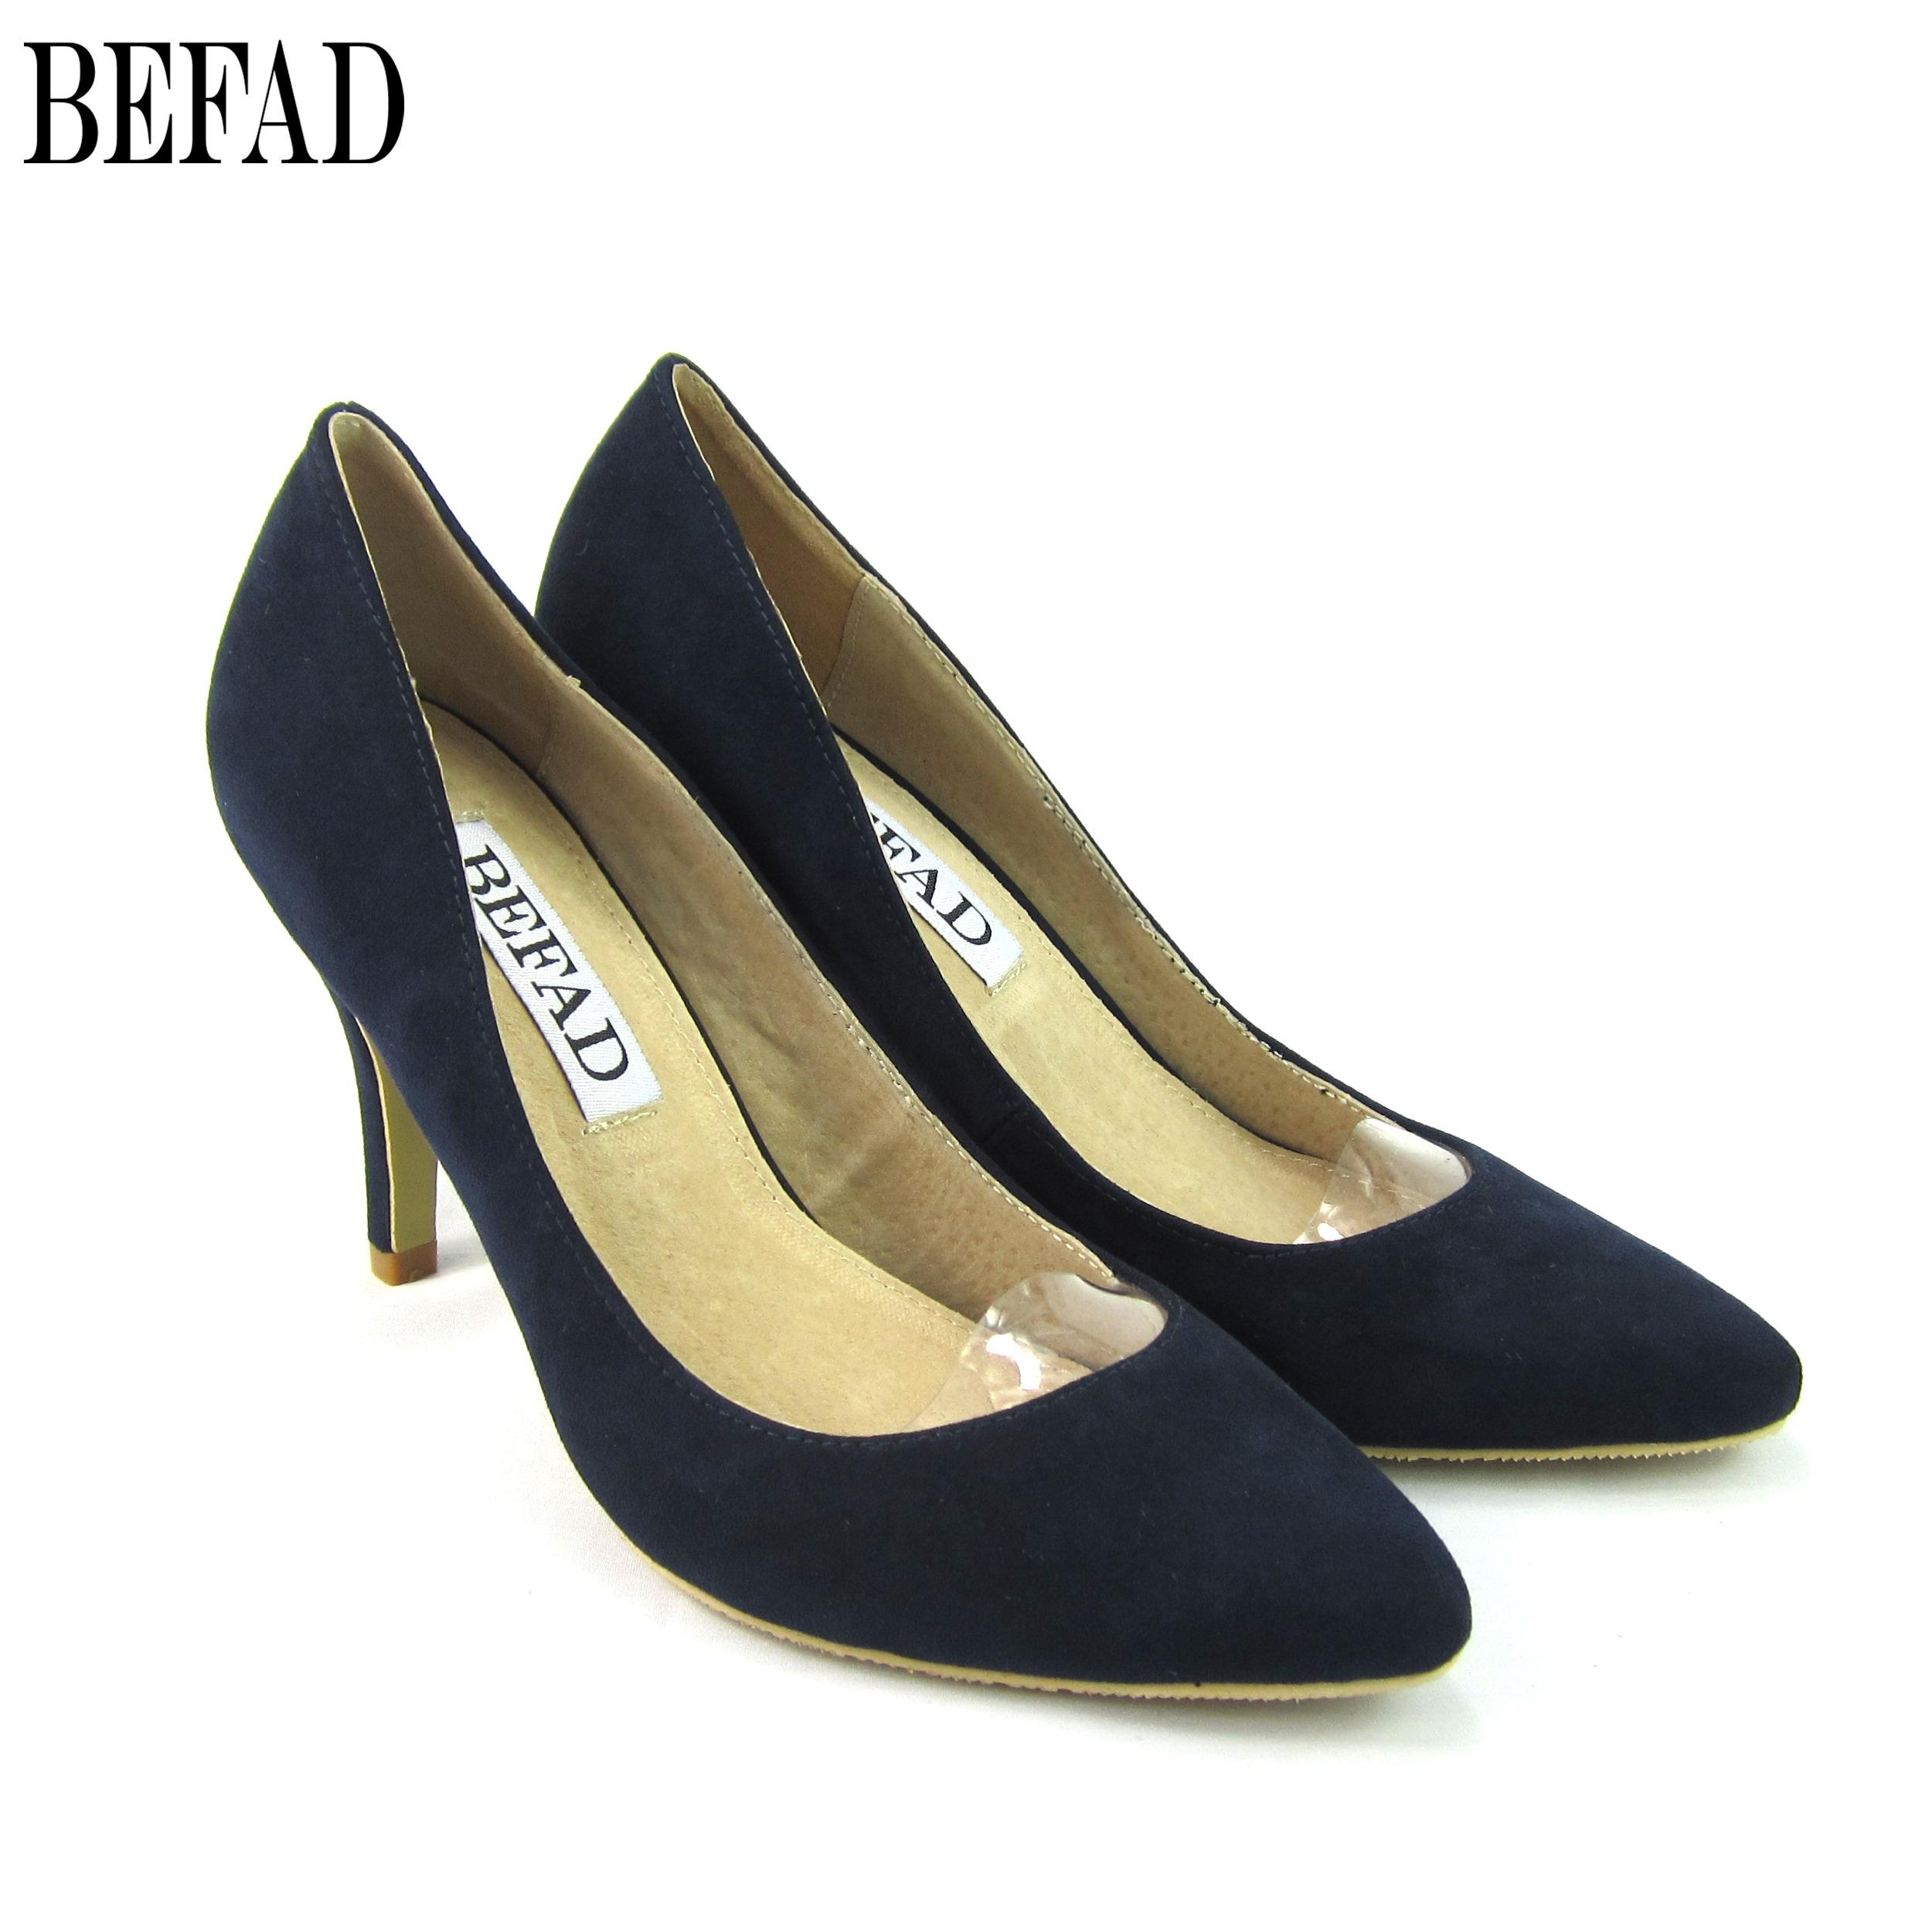 Genuine Leather Discount Dress Shoes High Heel Formal Dress Shoes ...